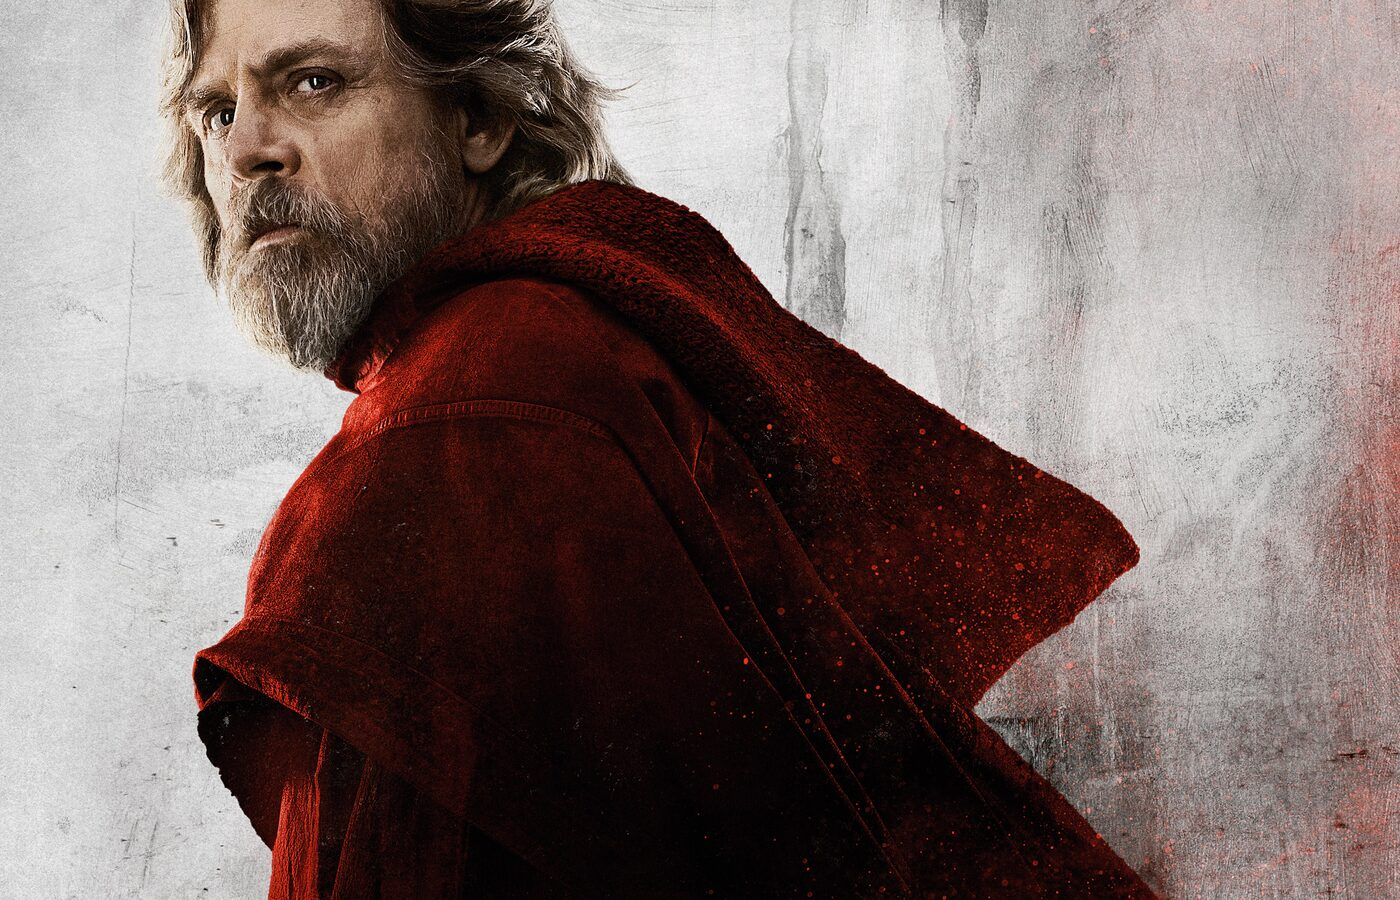 luke-skywalker-star-wars-the-last-jedi-dh.jpg